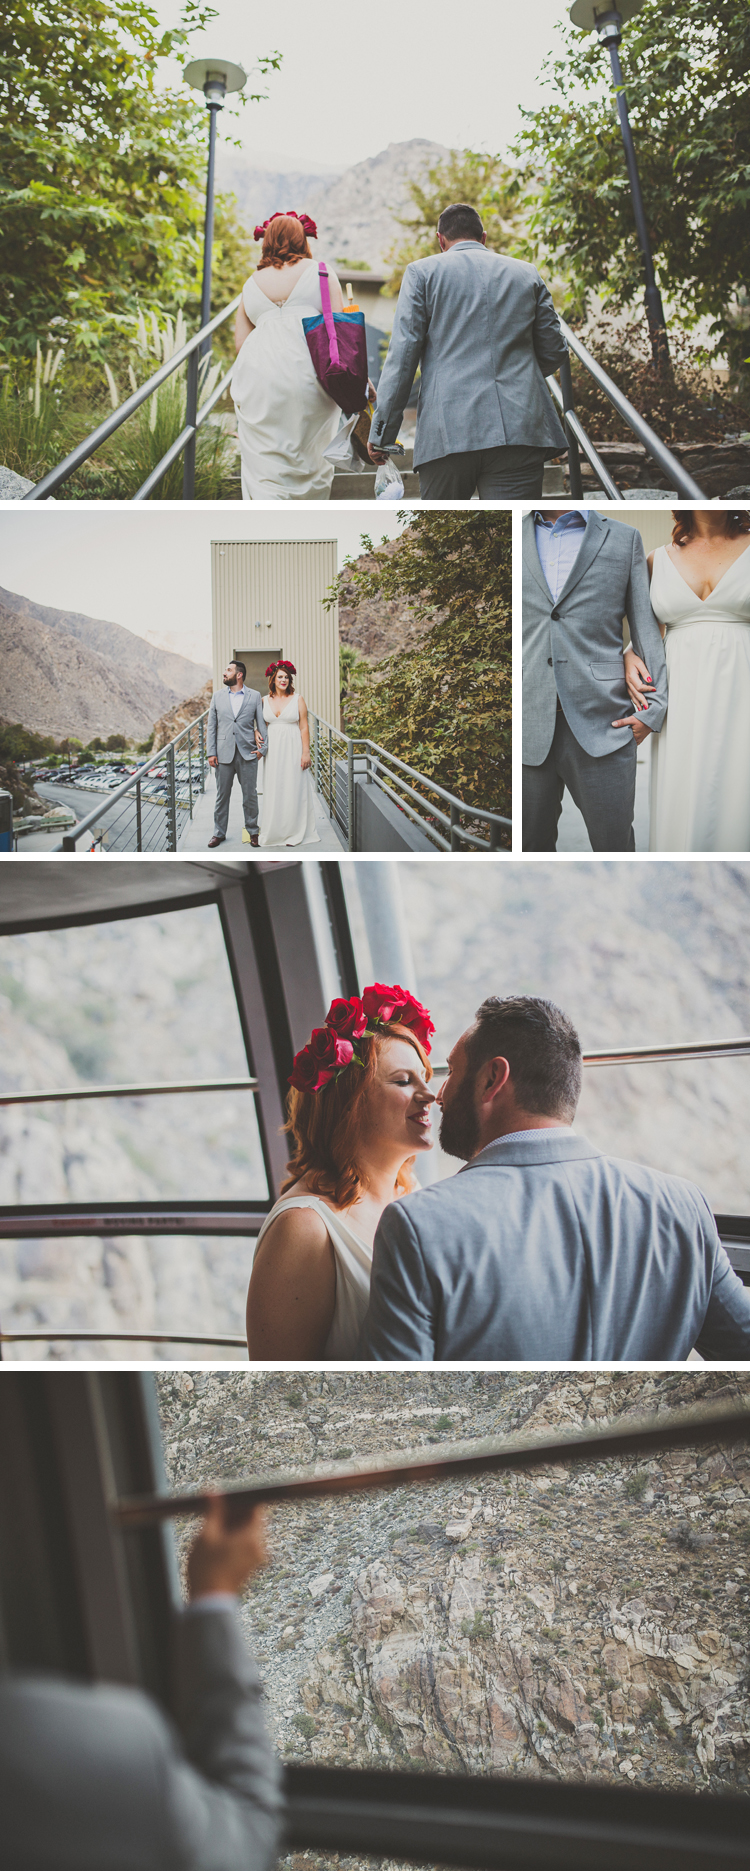 Palm Springs Aerial Tramway Wedding